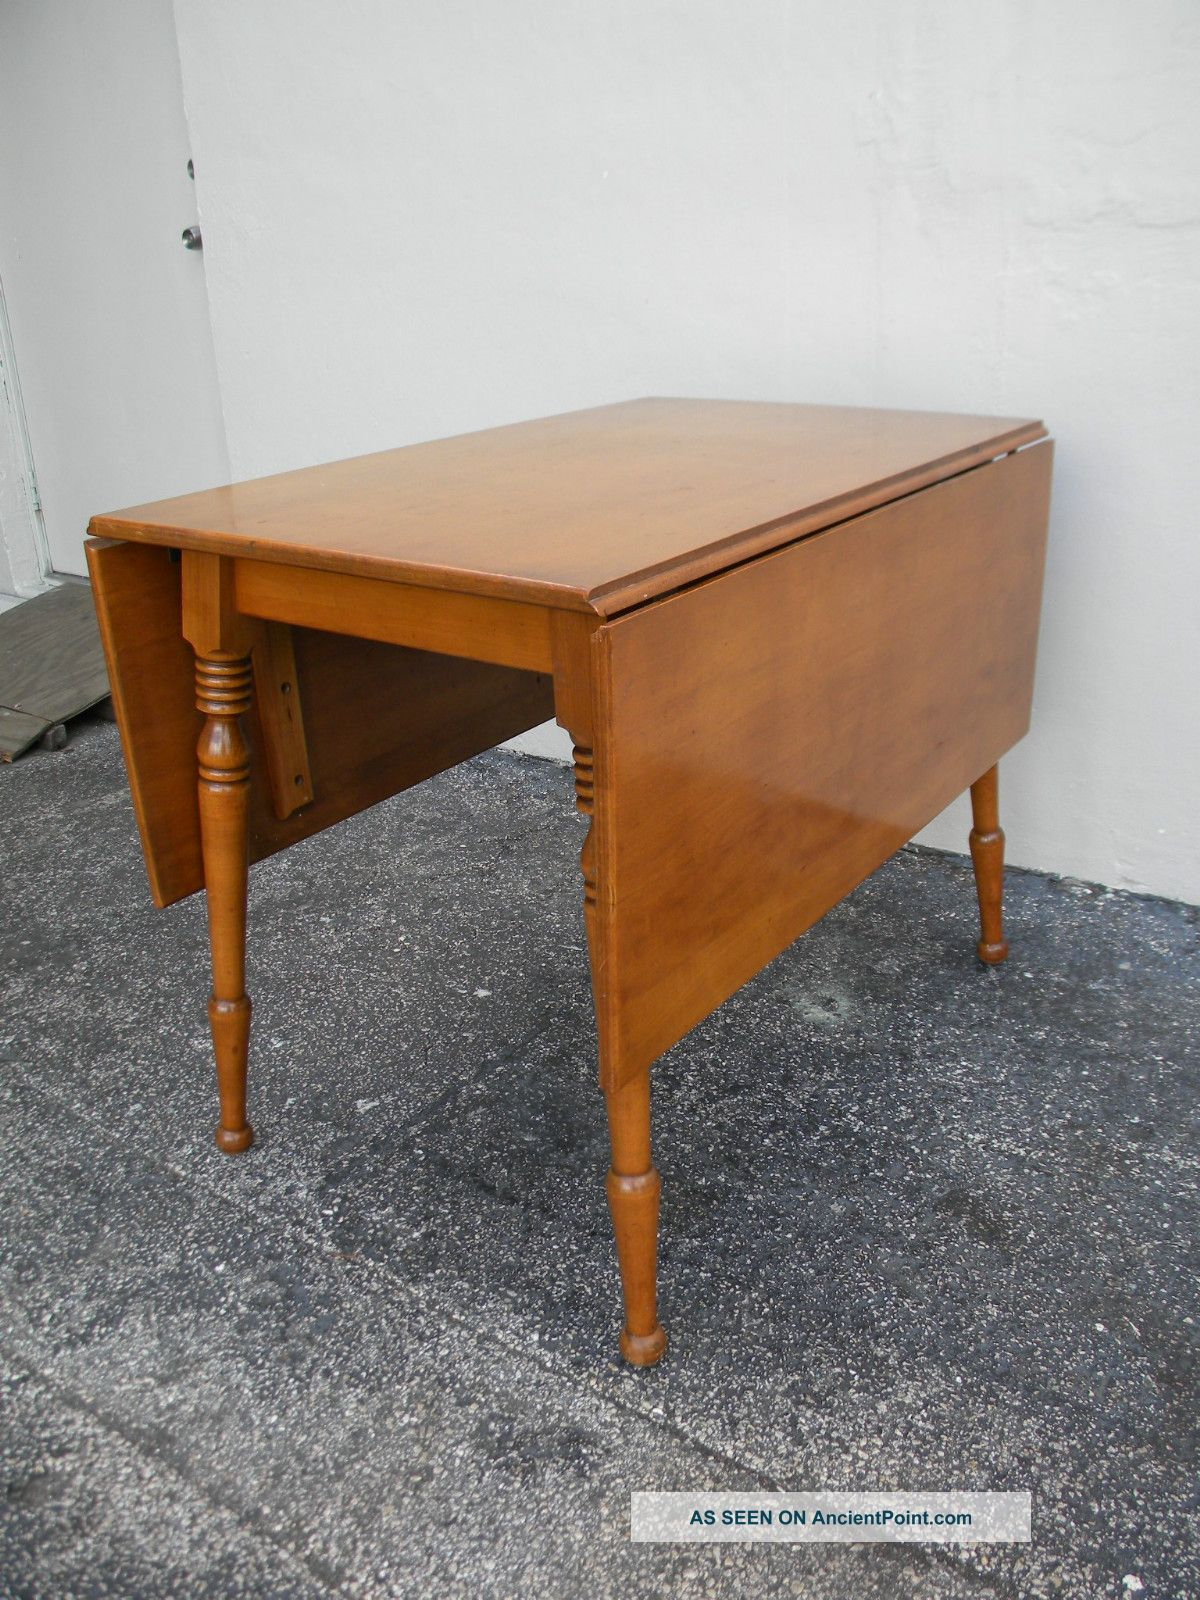 Maple Drop Leaf Dining Table 2025 1900-1950 photo